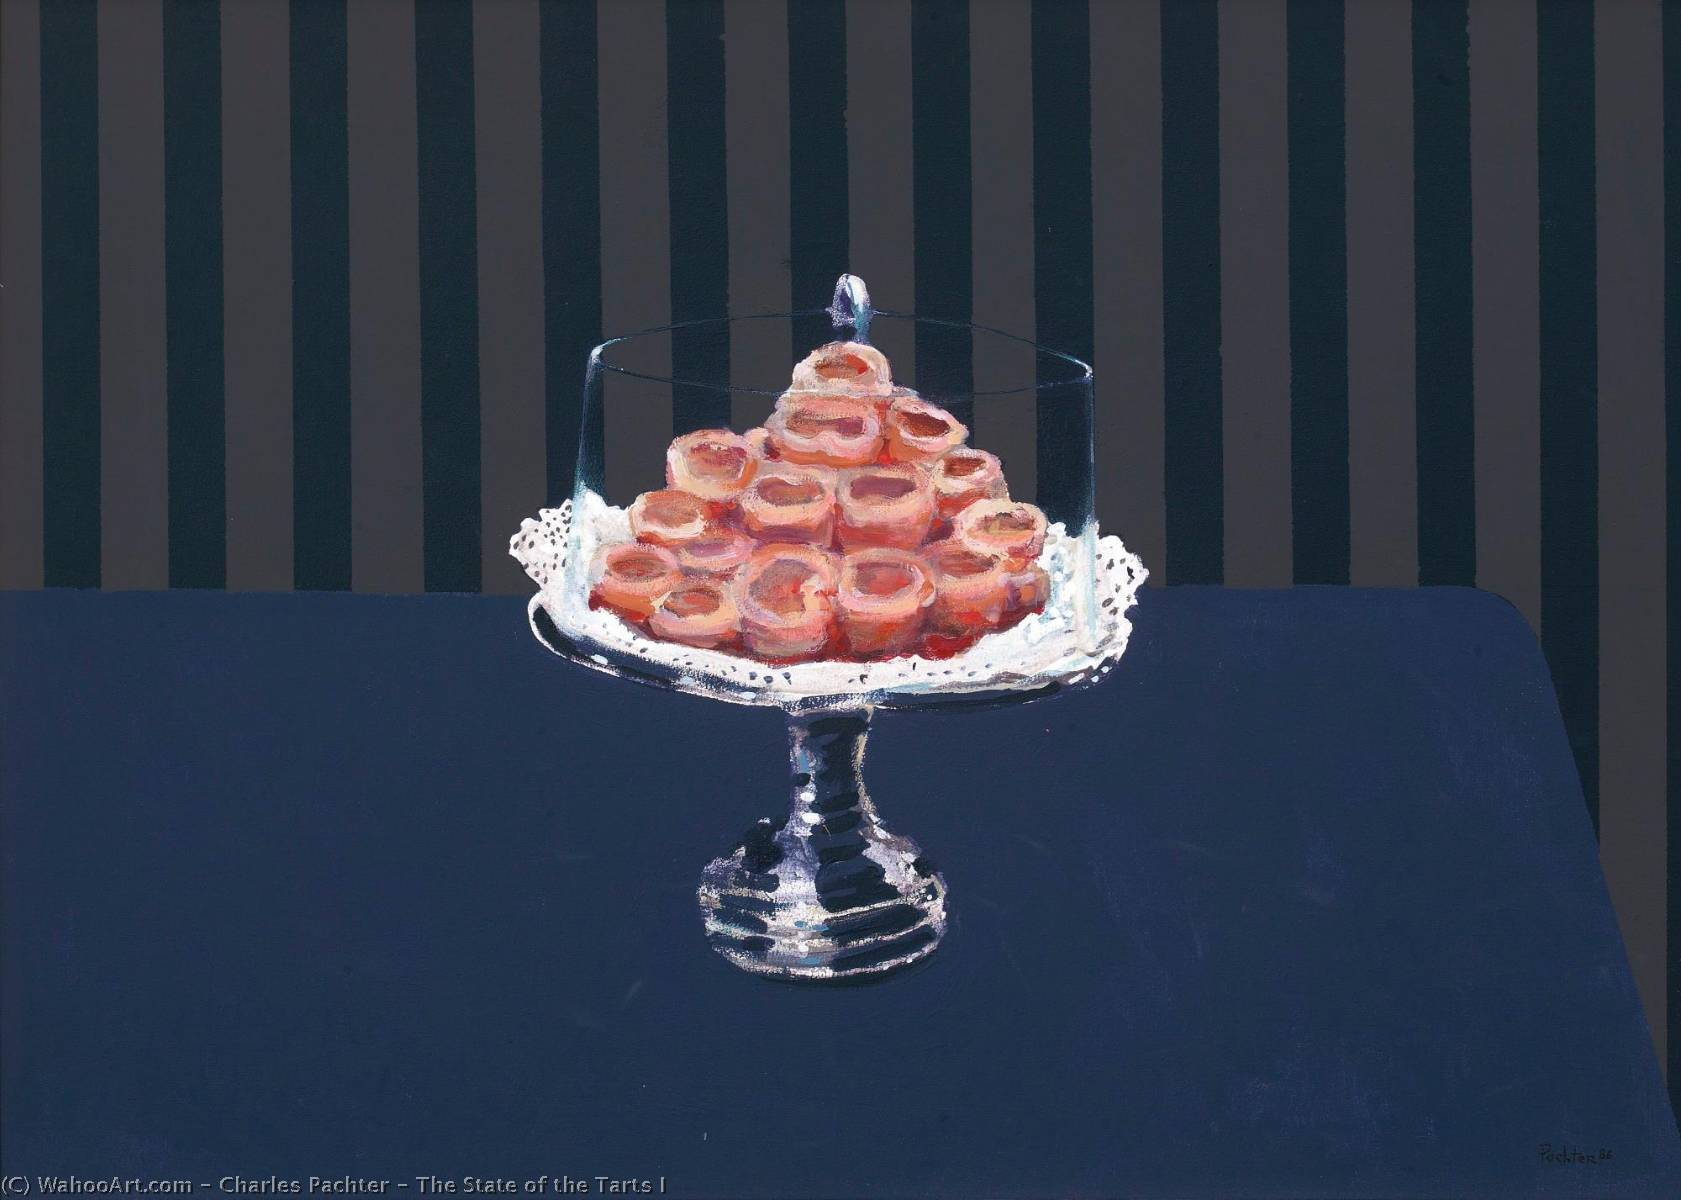 The State of the Tarts I by Charles Pachter | Museum Quality Reproductions | WahooArt.com